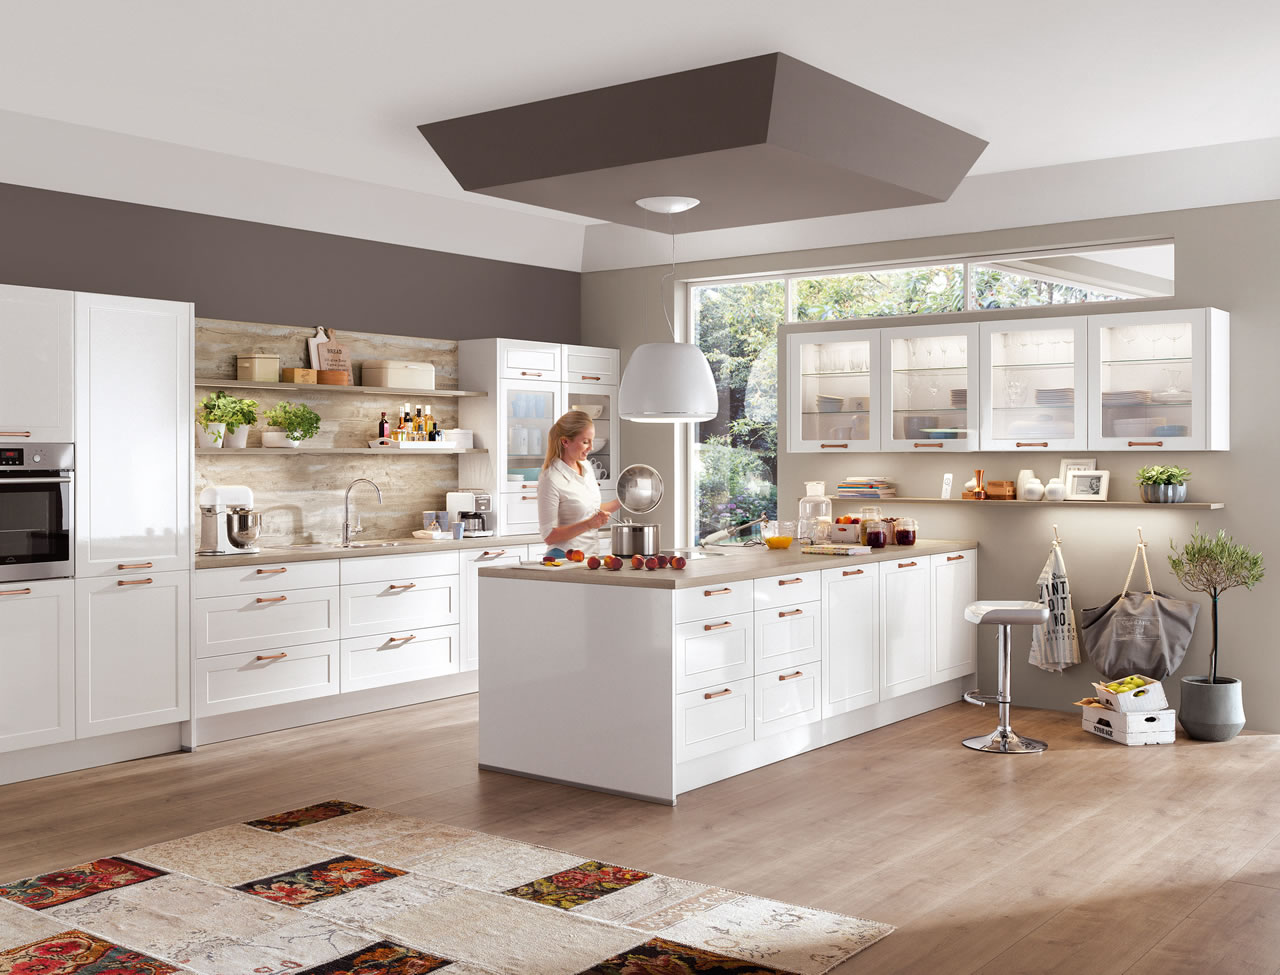 Magnolia Farbe Küchenmöbel I Home Kitchens Nobilia Kitchens And German Kitchens